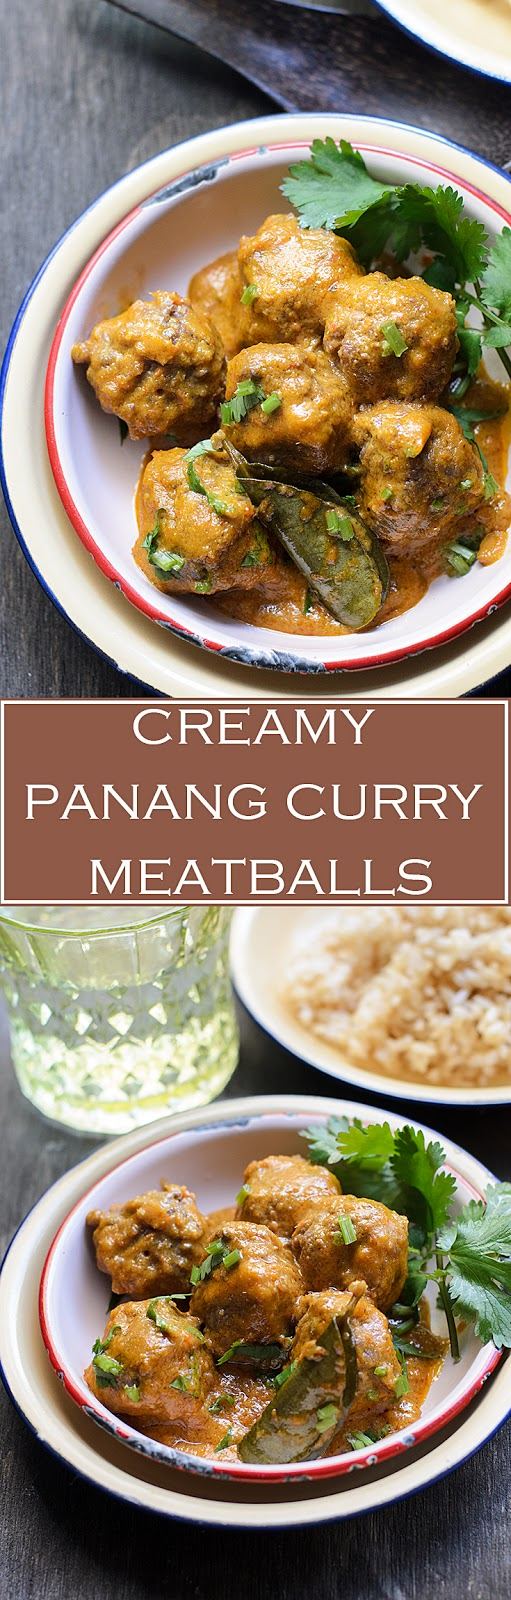 Creamy Red Curry Meatballs recipe. Delicious creamy red curry meatballs is also known as Panang curry. Panang curry is originally from Penang, Malaysia.  This meatballs red curry is thick, creamy, nutty and full of flavours from South east Asia region.